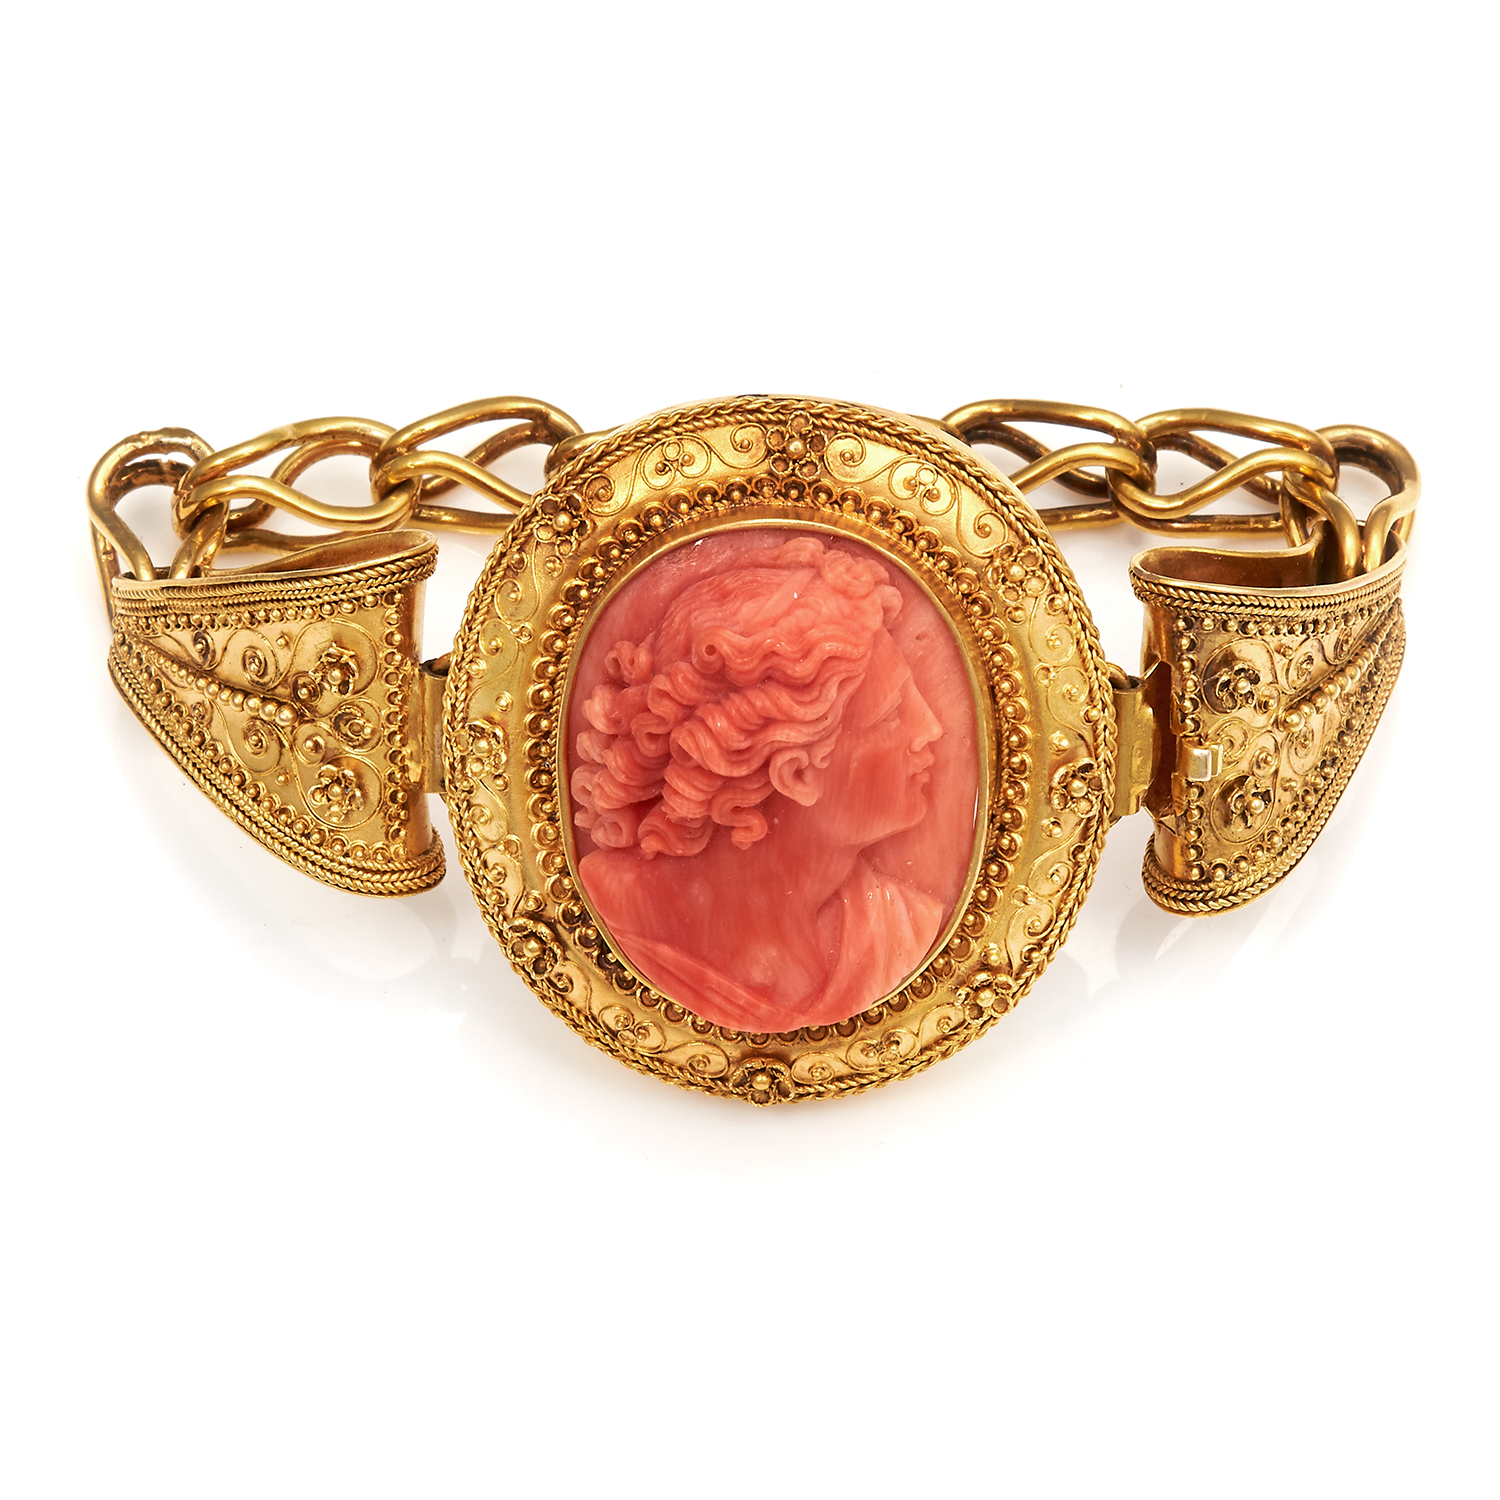 Los 43 - AN ANTIQUE CORAL CAMEO BRACELET, 19TH CENTURY in high carat yellow gold, set with an oval carved